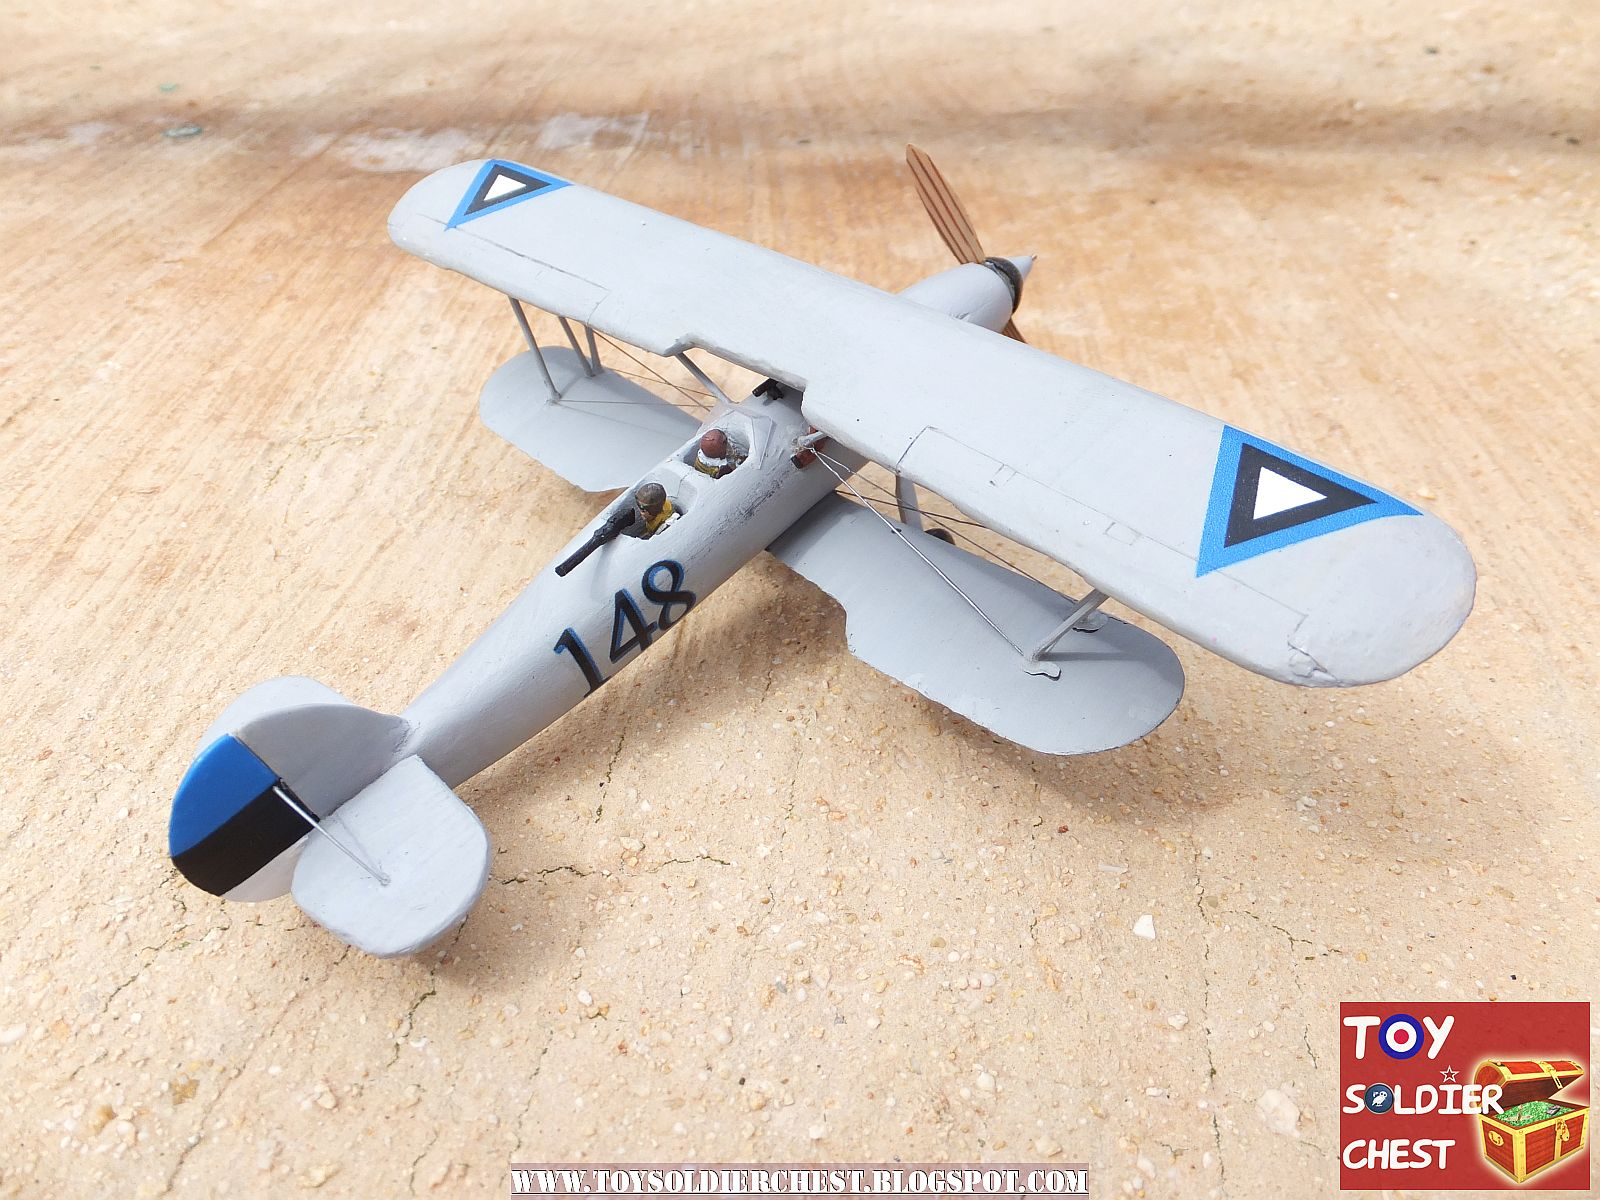 Tutorial; Scratch-building a 1/72 aircraft out of wood and spare parts